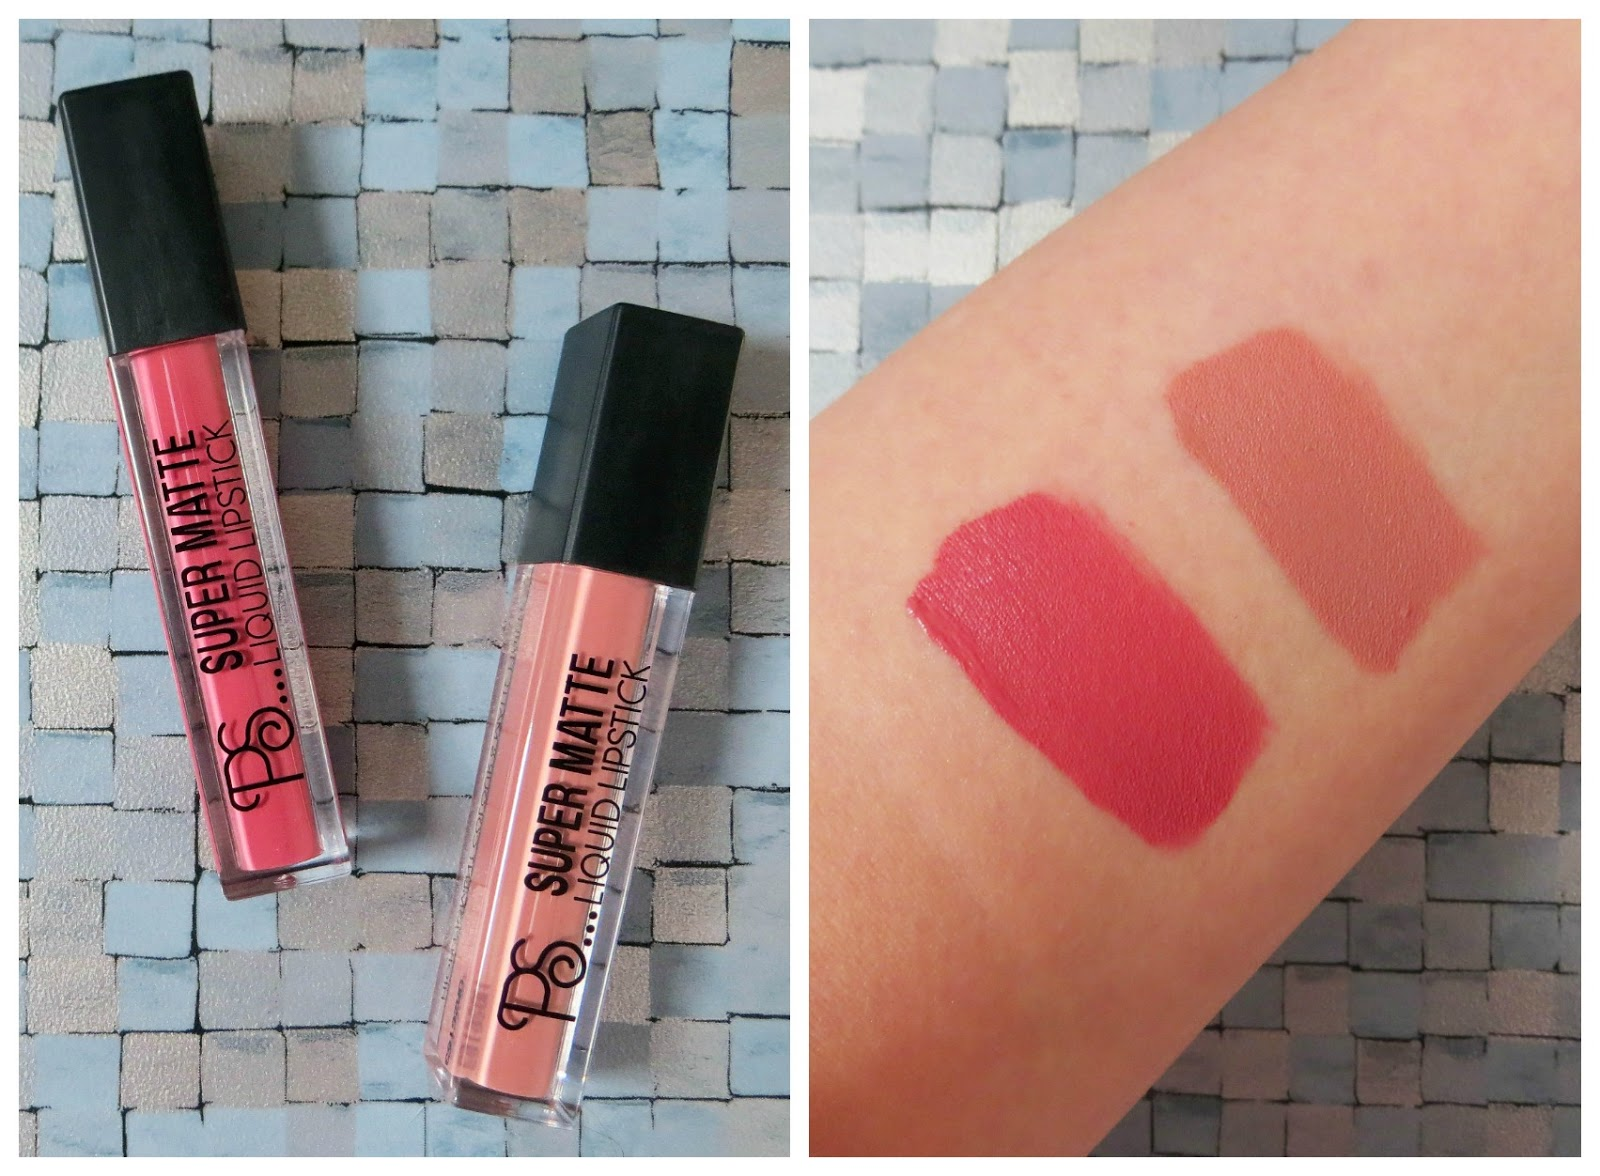 Dainty Ditsy Tried And Tested Primark Beauty Super Matte Liquid Lipsticks